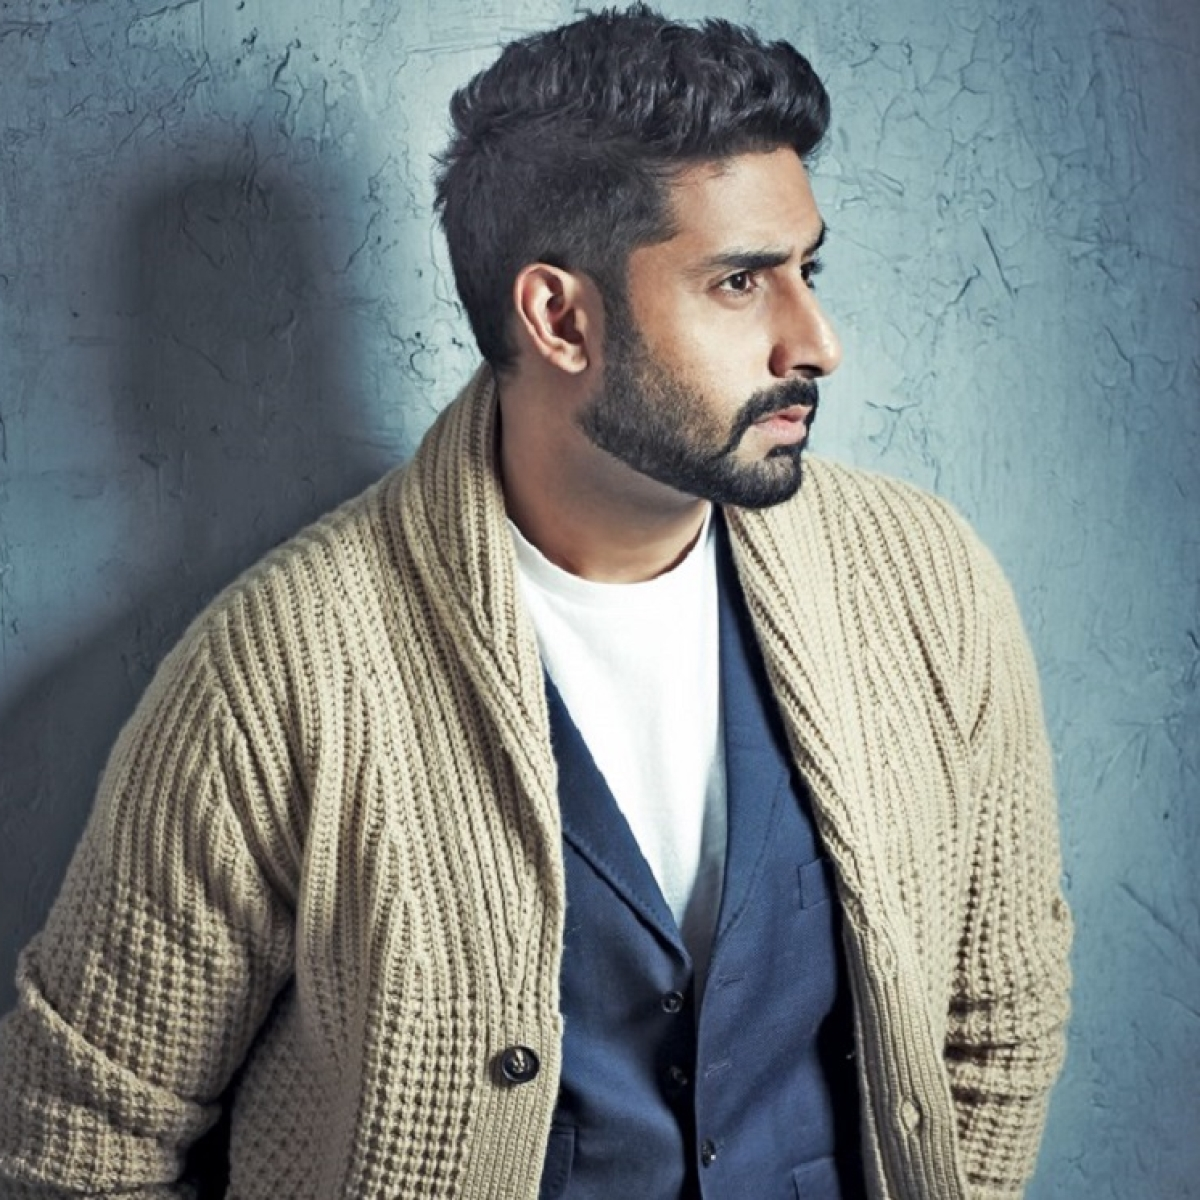 'Completed web series, documentary,  three films': Abhishek Bachchan's befitting reply to netizen who called him 'slow'